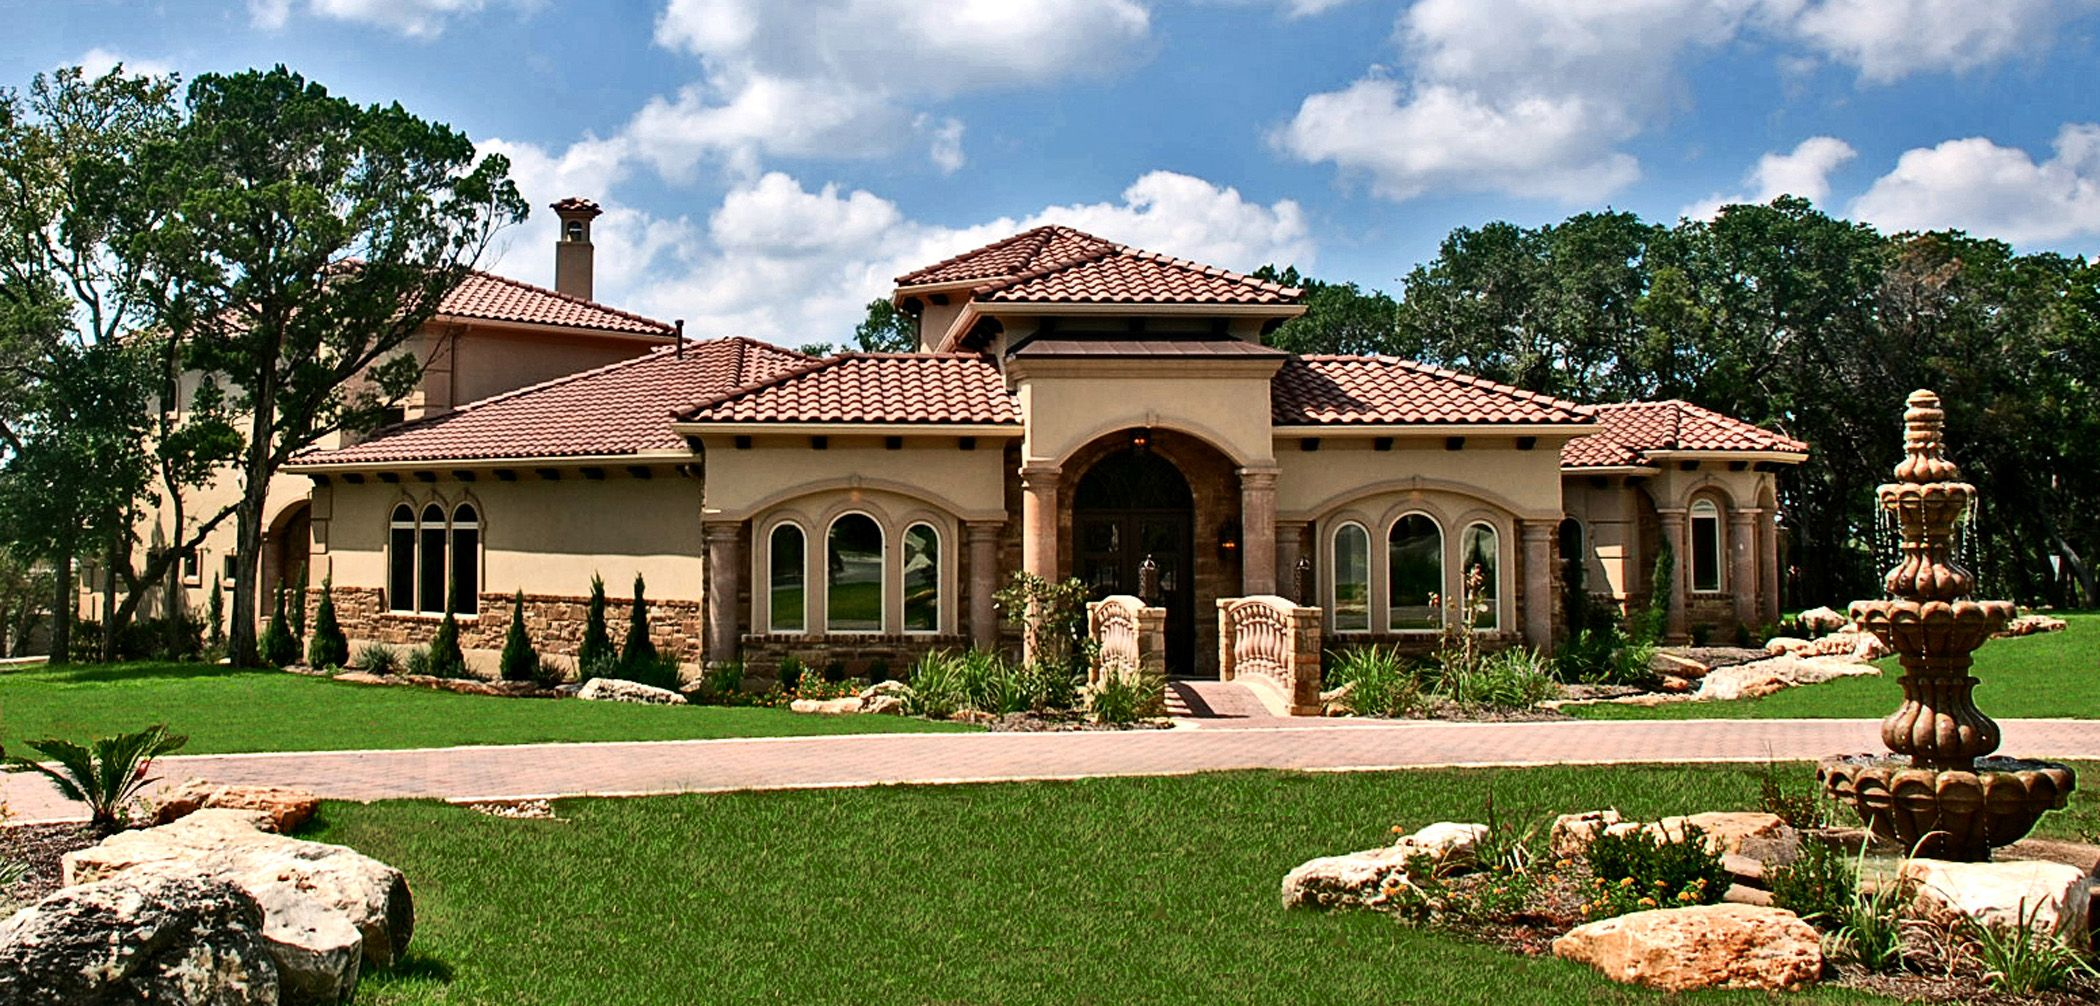 Lakeway texas tuscan front elevation by zbranek holt for Luxury home exteriors